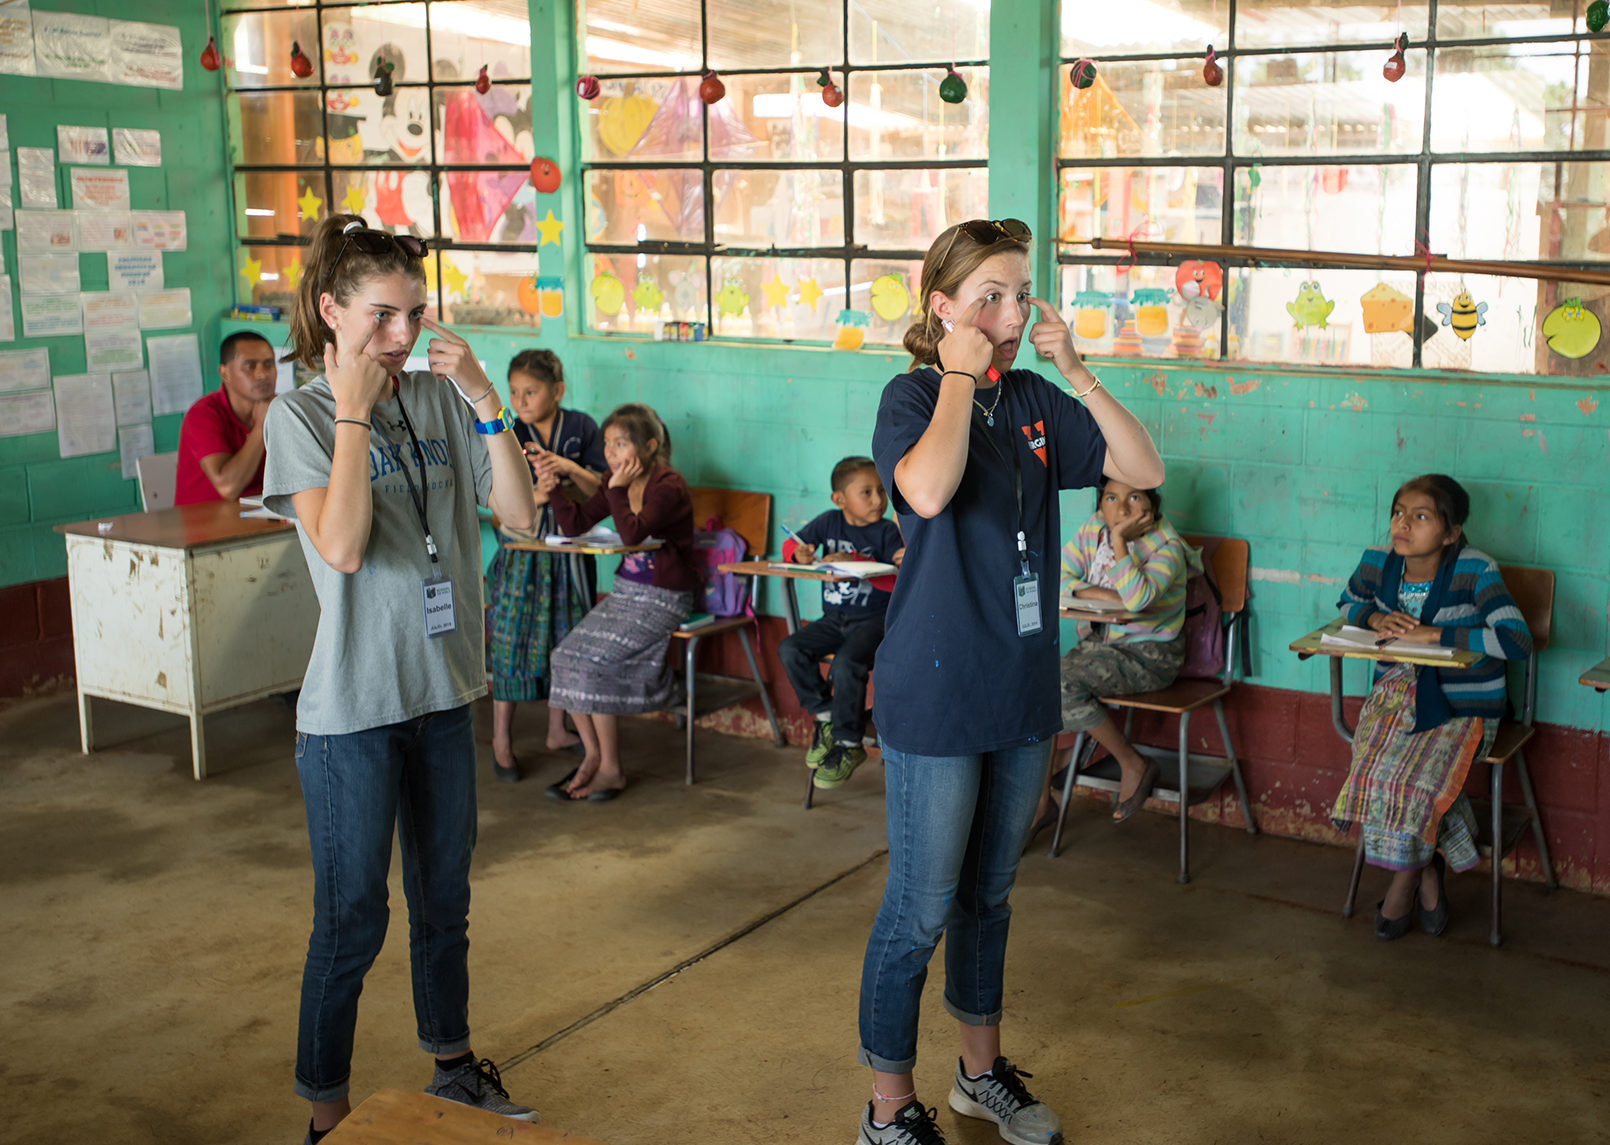 (above l-r) Isabelle Kenny and Christina (Nina) Maurizi, both of Summit, take the reins of the classroom during their service trip to Guatemala this summer. Photo: Adam Richins Photography.